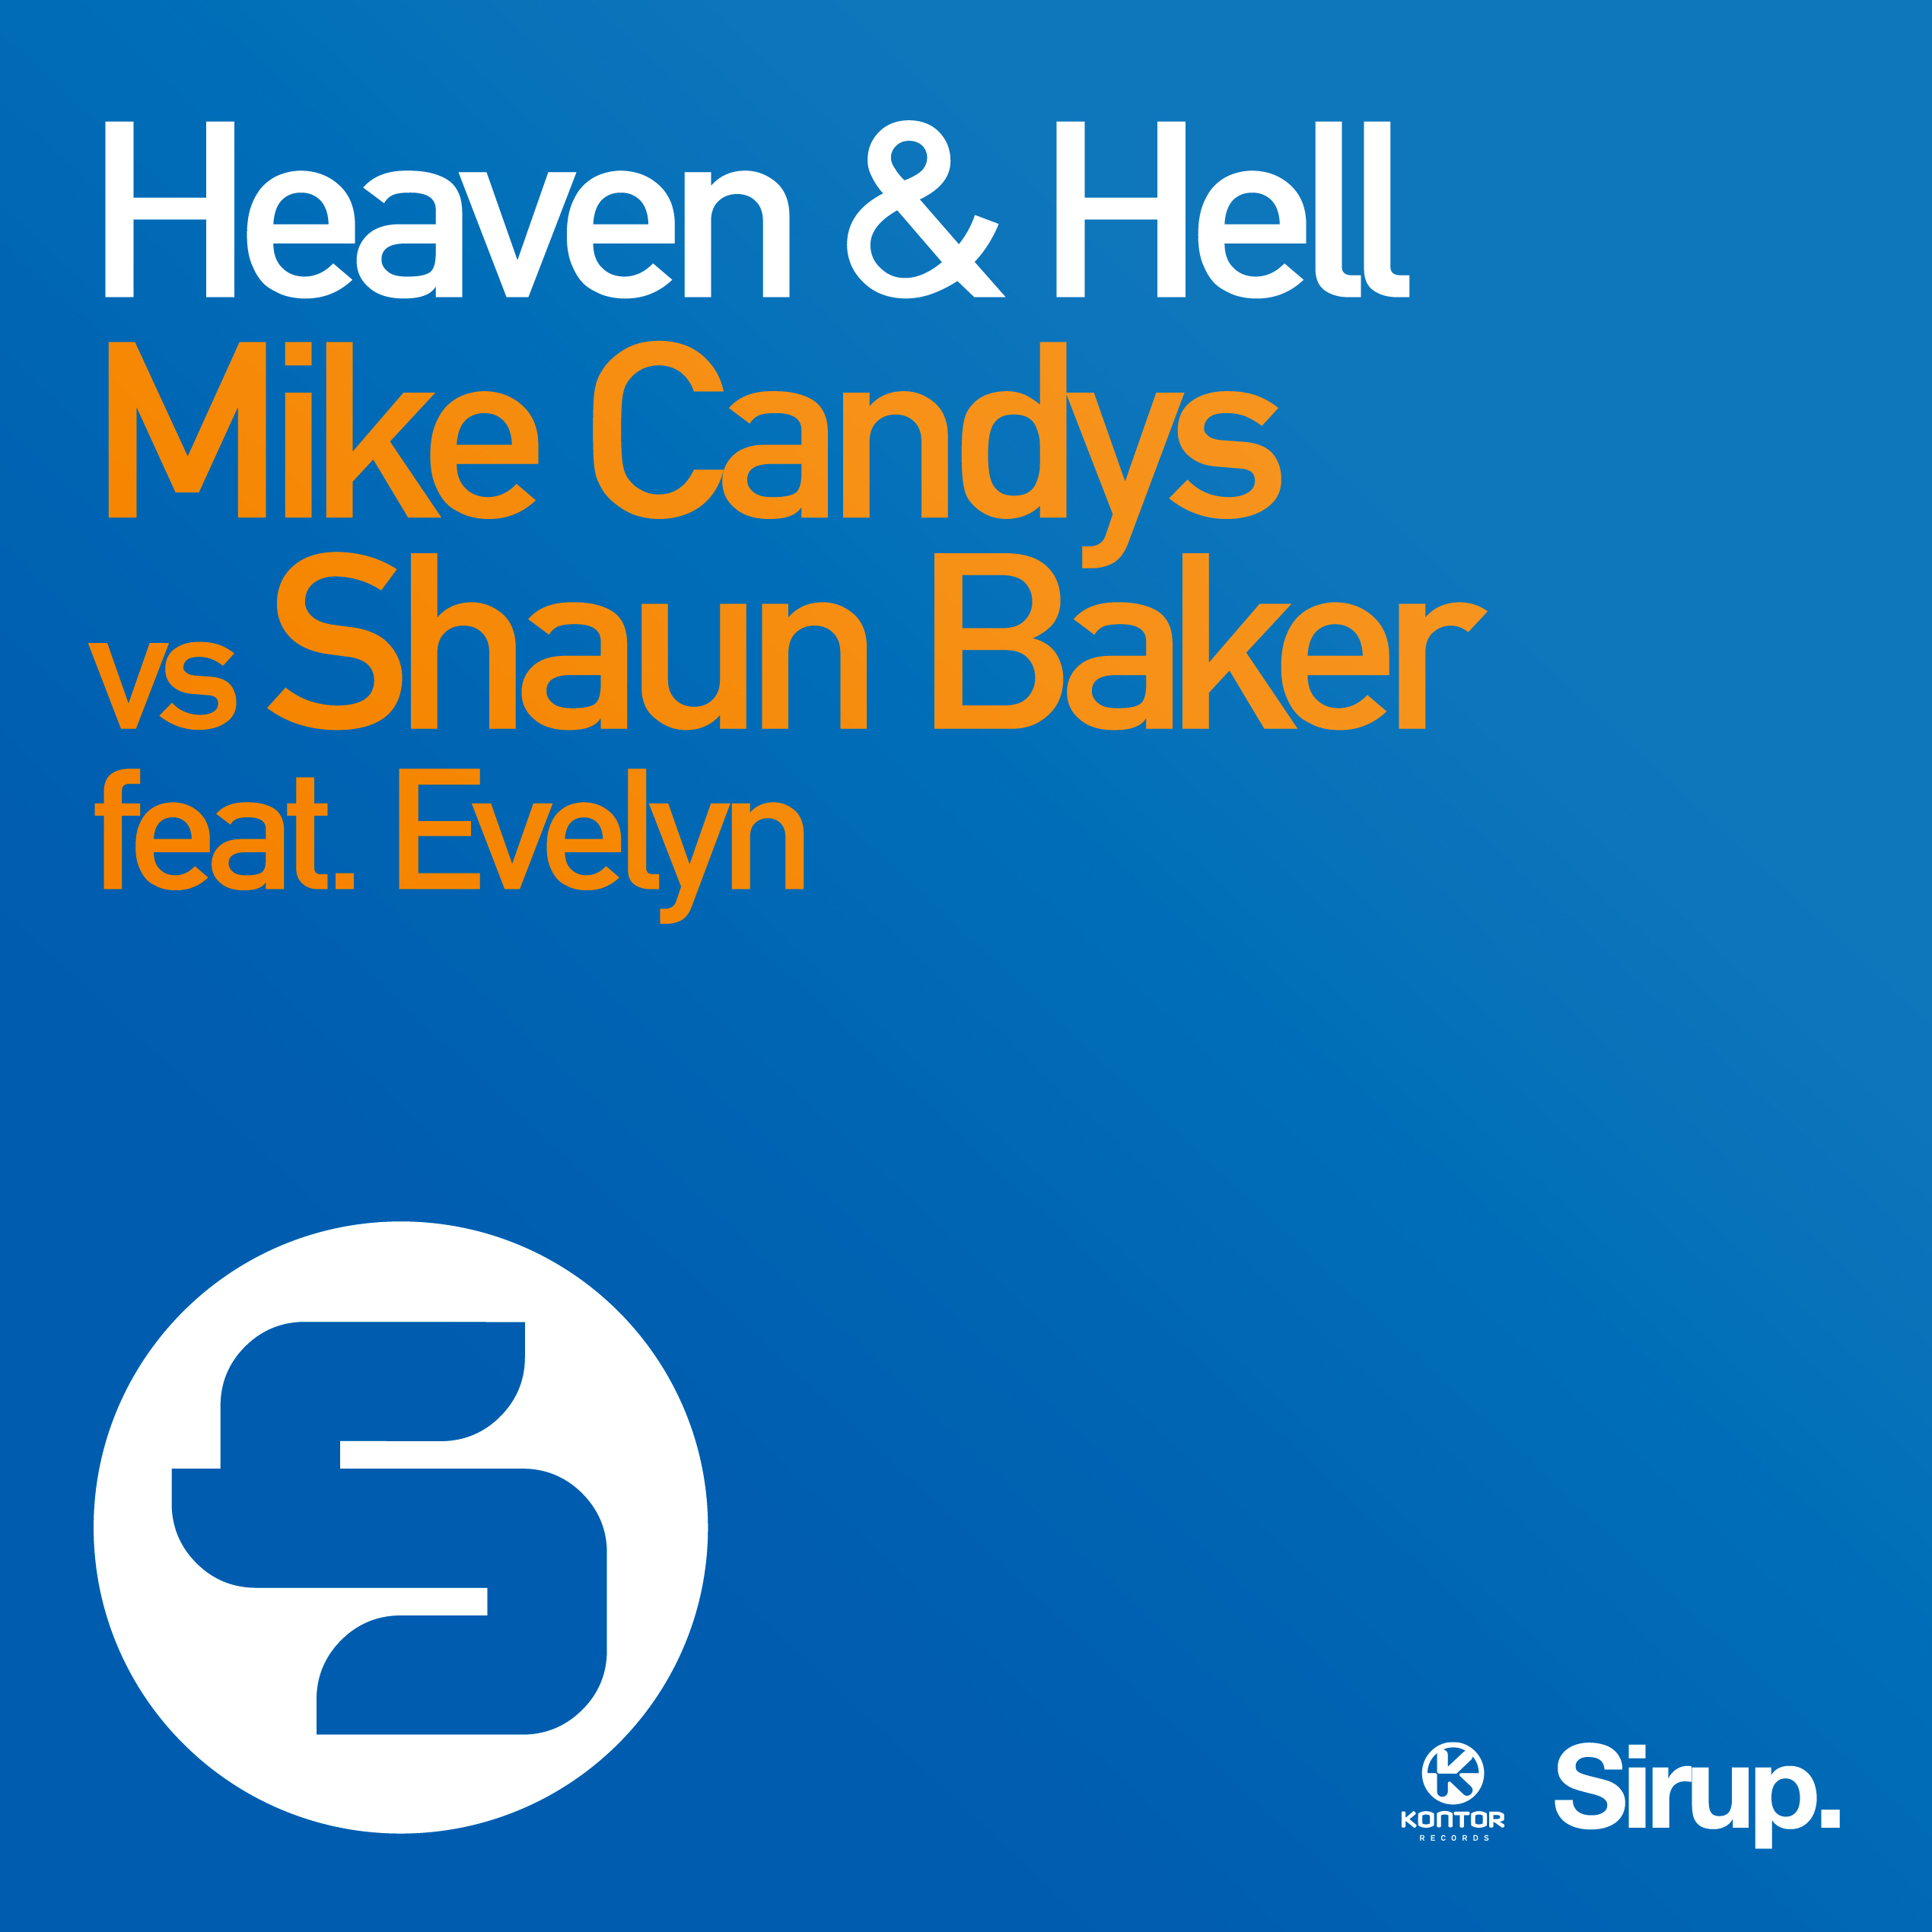 MIKE CANDYS VS. SHAUN BAKER FEAT. EVELYN - Heaven & Hell (Sirup/Kontor/Kontor New Media)